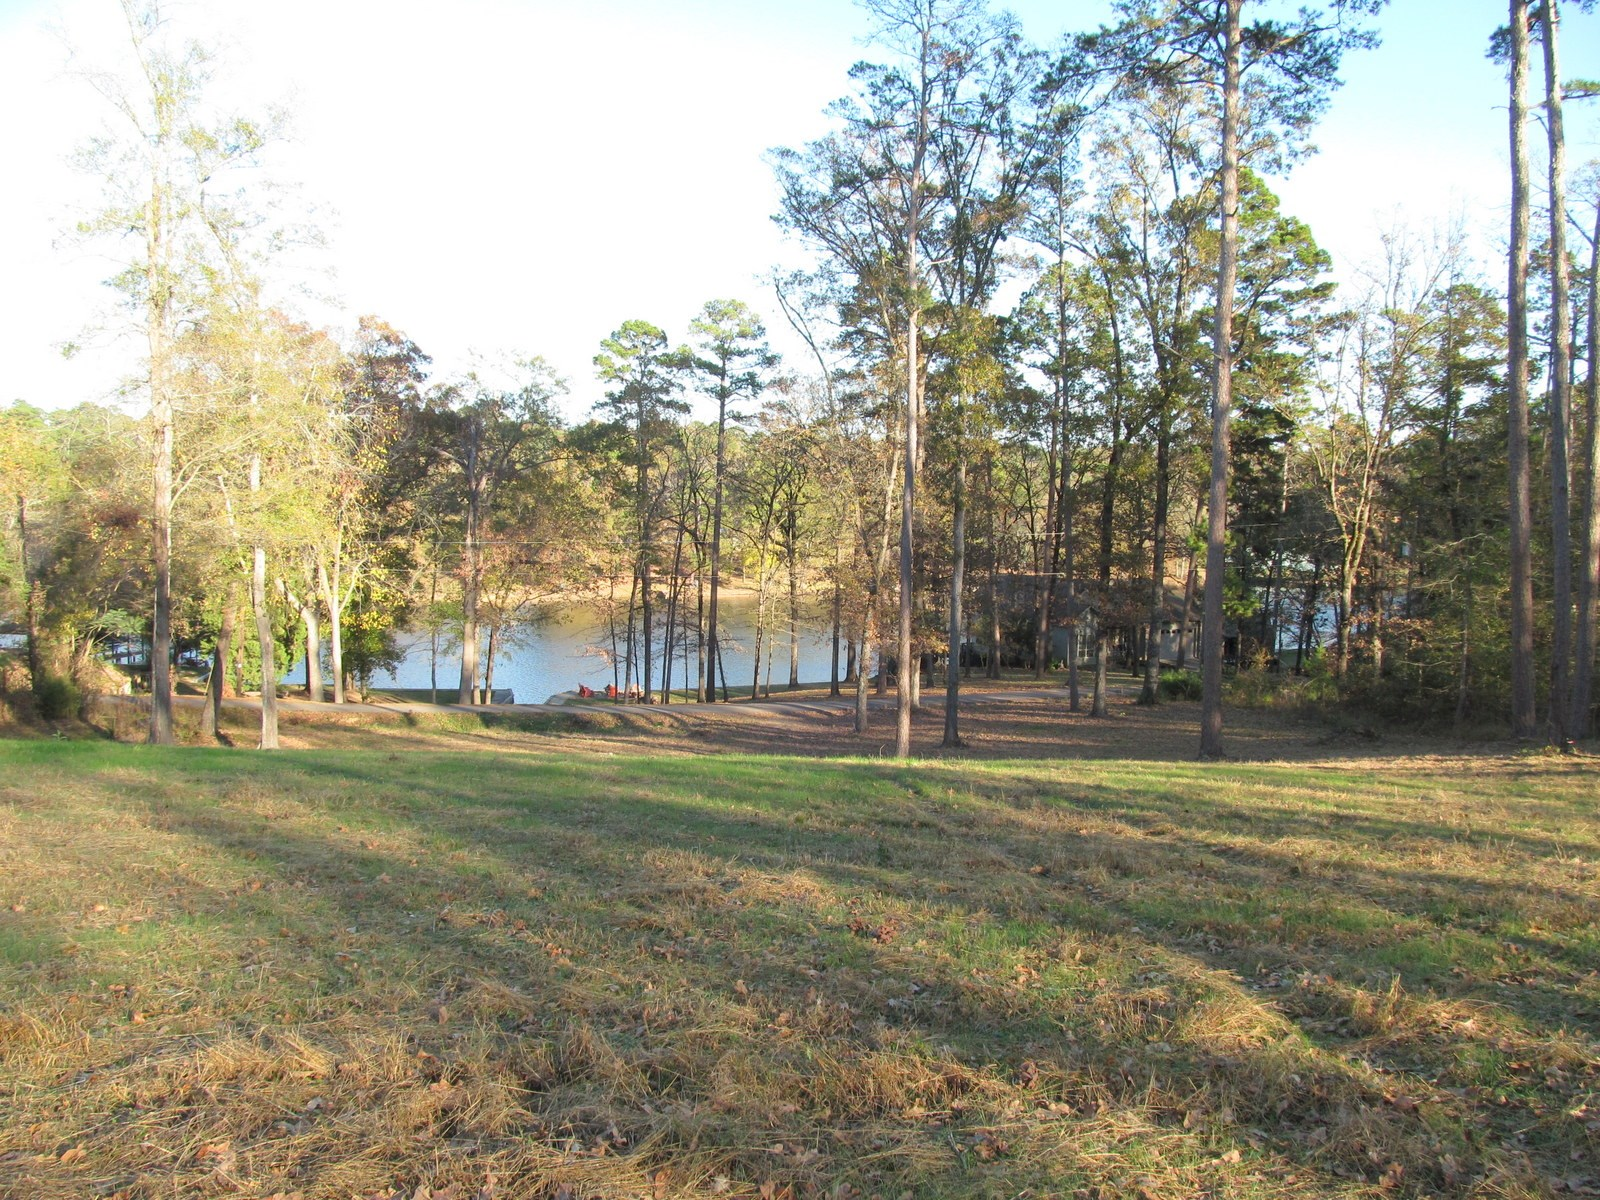 CYPRESS SPRINGS LAKE - 1 ACRE LOT - SCROGGINS, TX - EAST, TX